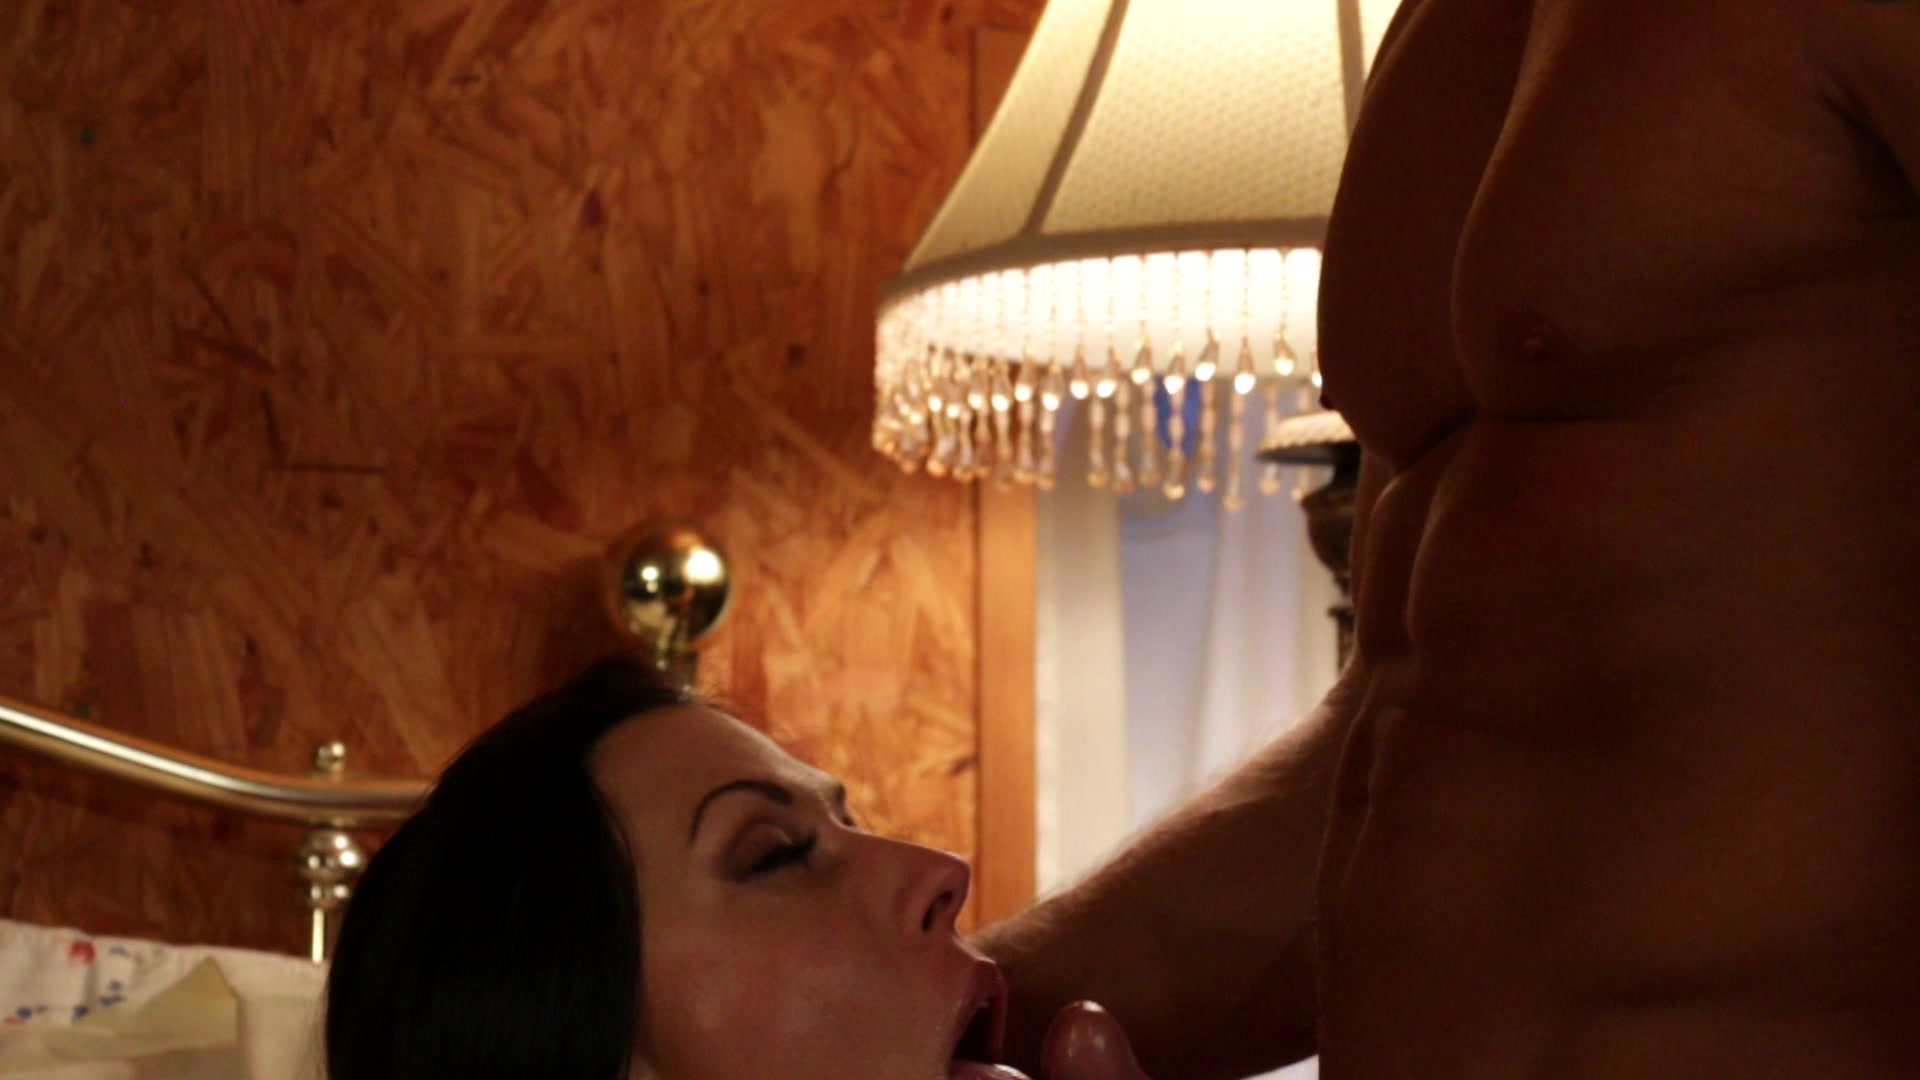 Scene with Rachel Starr - image 16 out of 20